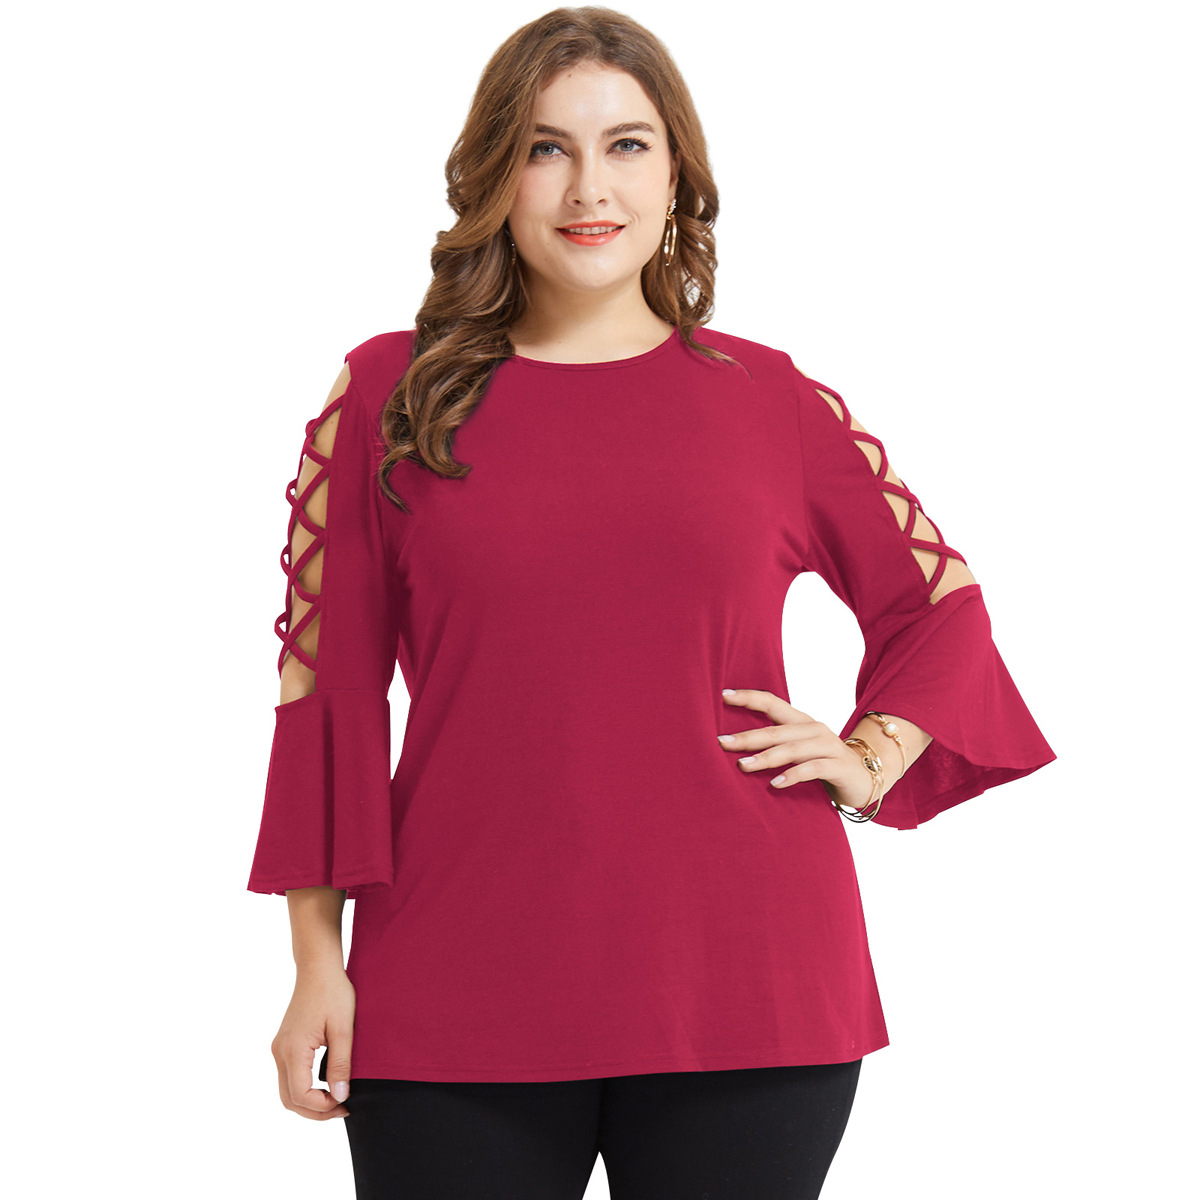 Cross border New Amazon popular European and American large women's top plus size hollow horn sleeve T-shirt for women